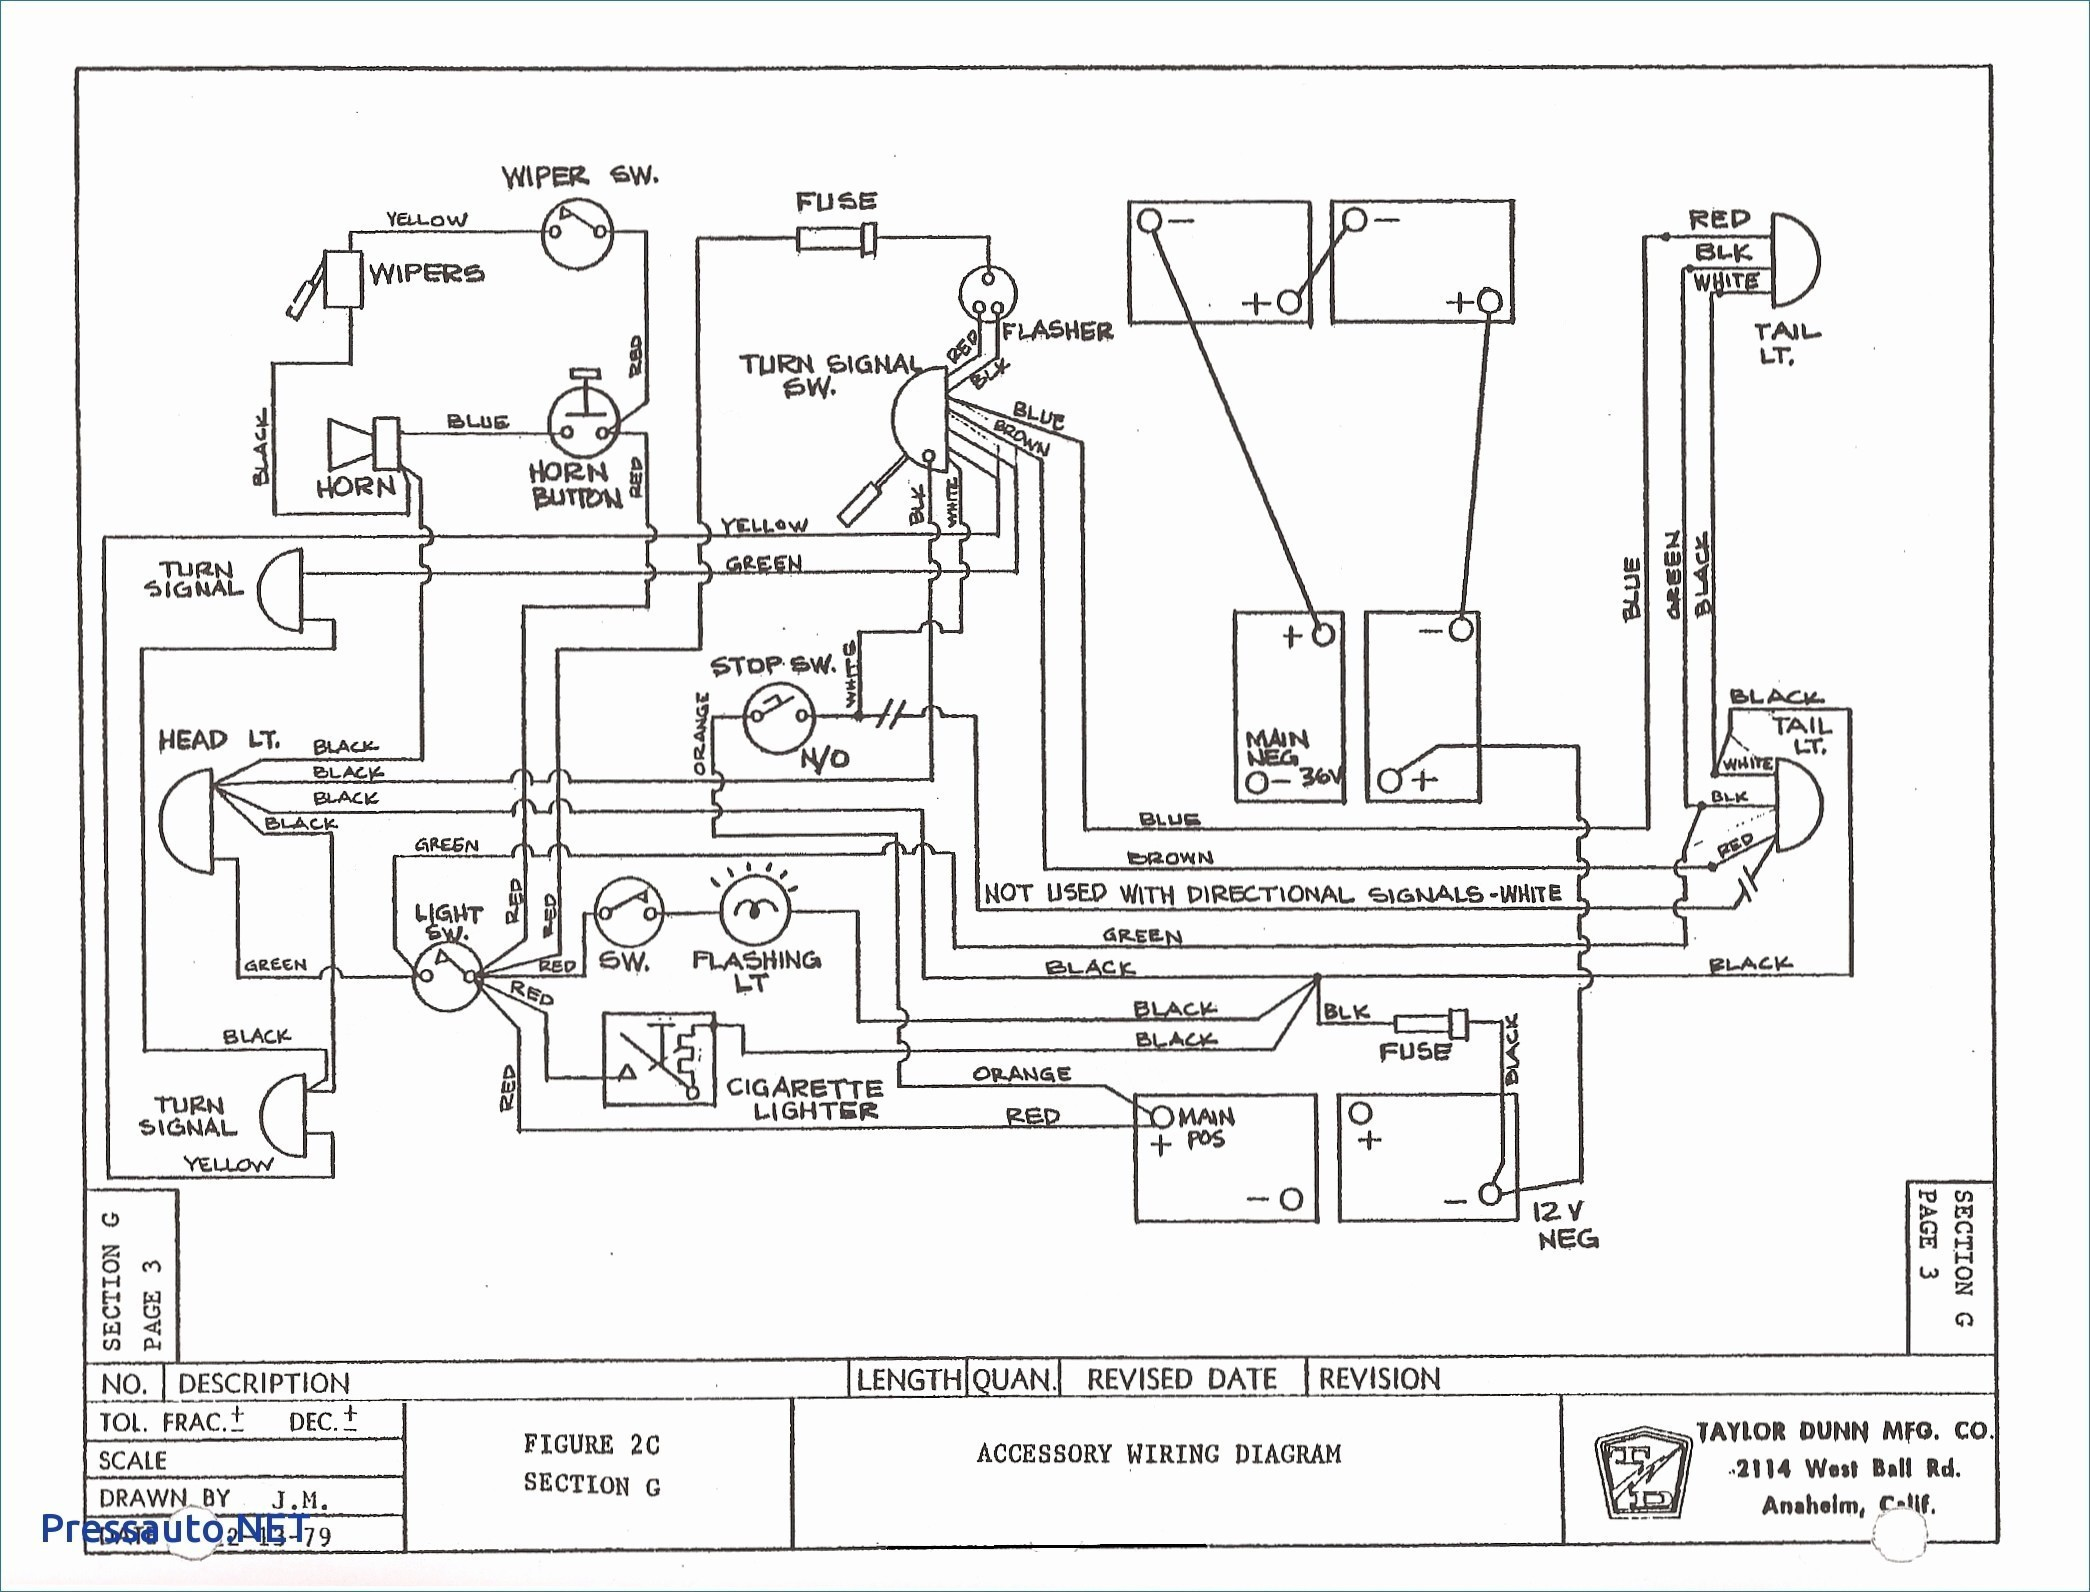 2008 columbia par car wiring diagram wiring diagram Columbia Par Car Engine Parts 2008 columbia par car wiring diagram kqc n england joinery uk \\u20222008 columbia par car